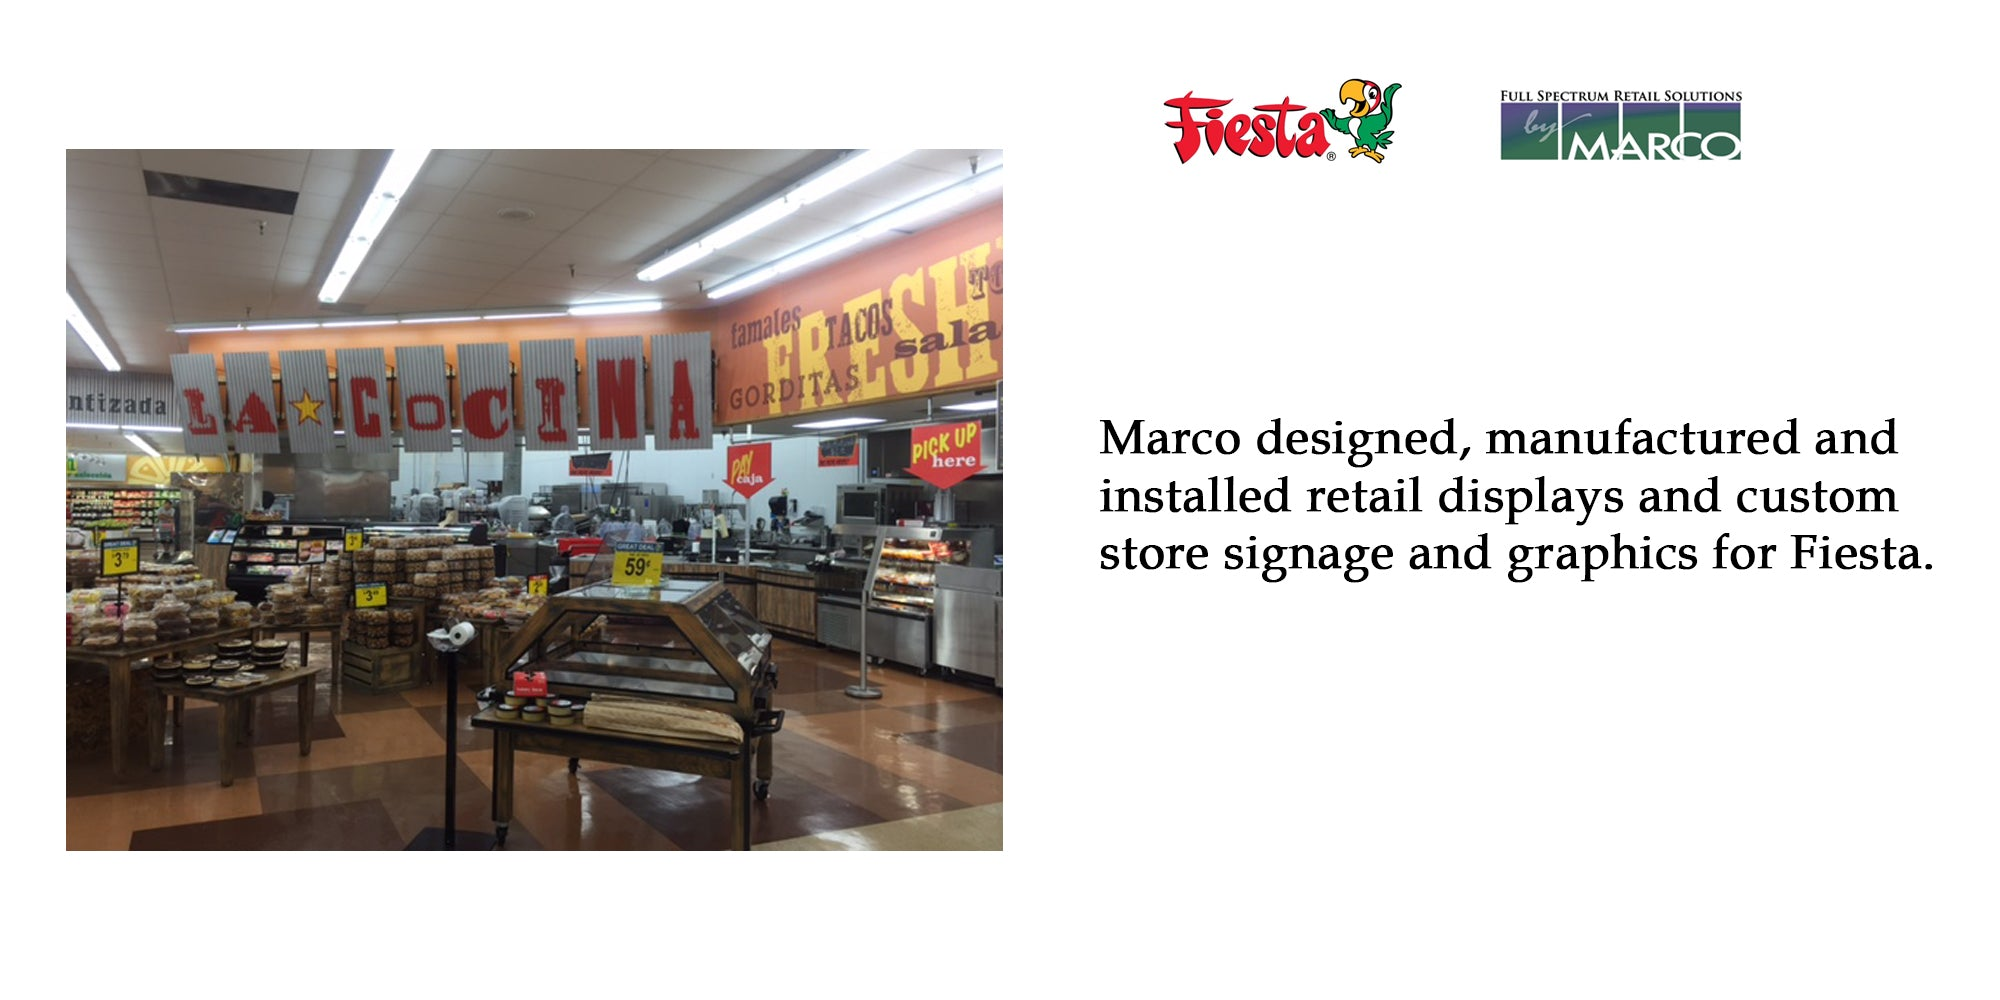 The Marco Company Retail Solutions